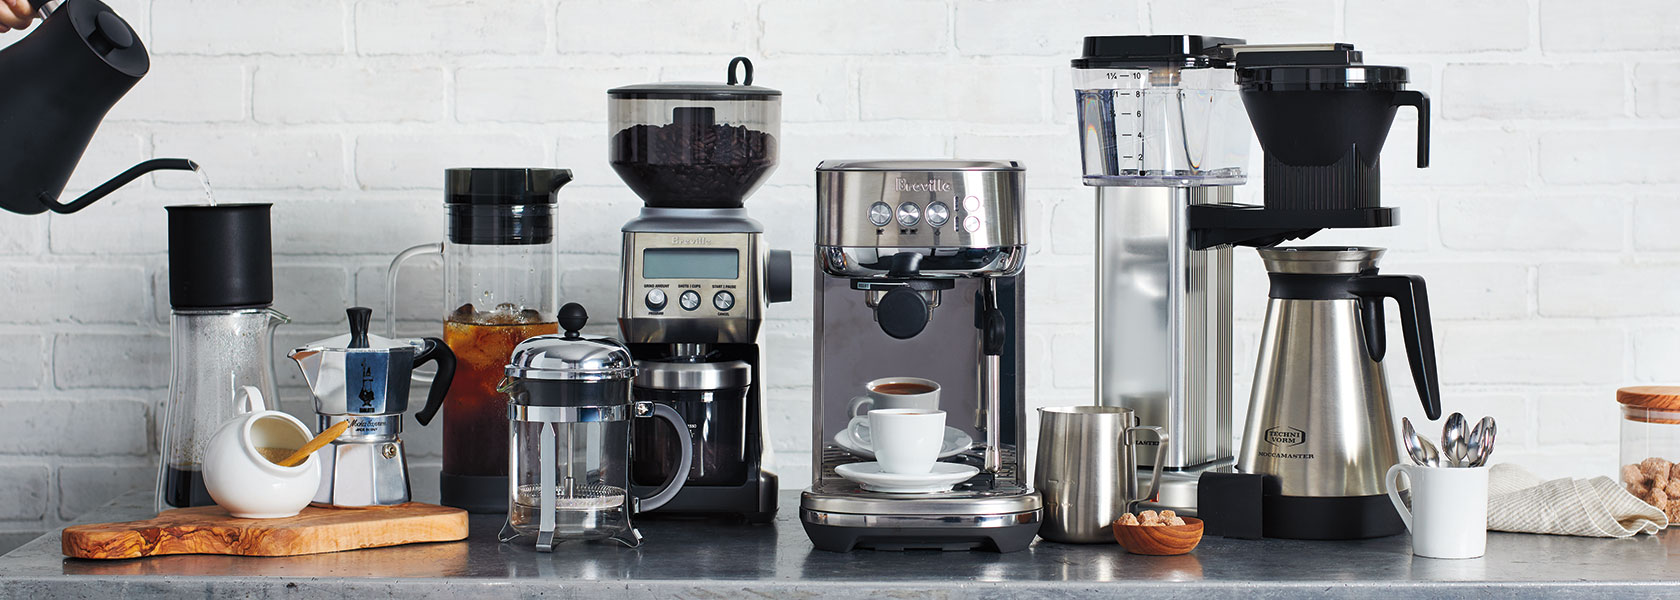 Coffee and espresso machines with sugar and cream